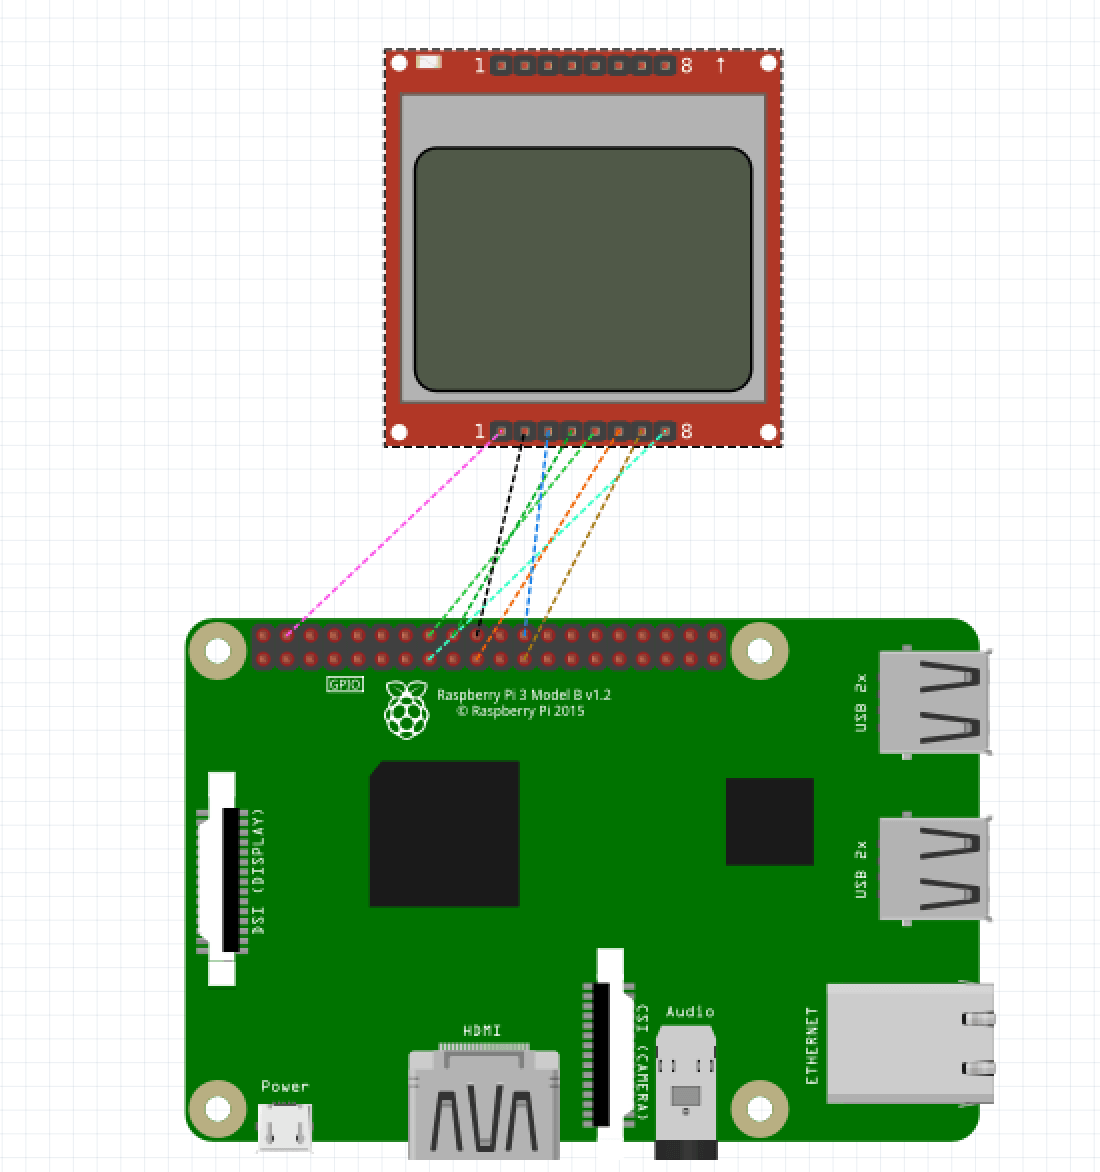 Nokia LCD pins with raspberry pi 2